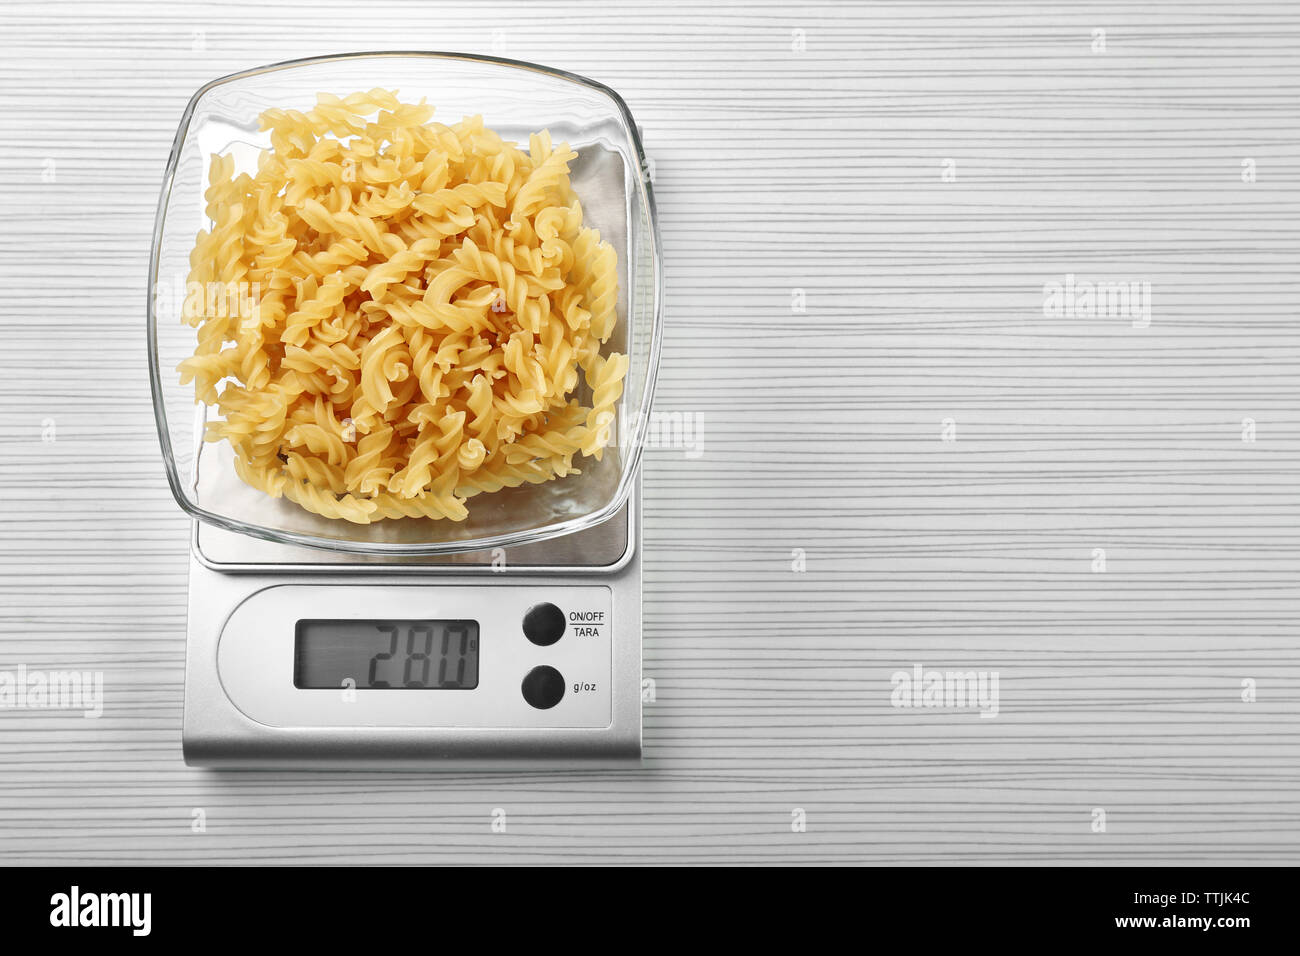 Pasta with digital kitchen scales on wooden background - Stock Image